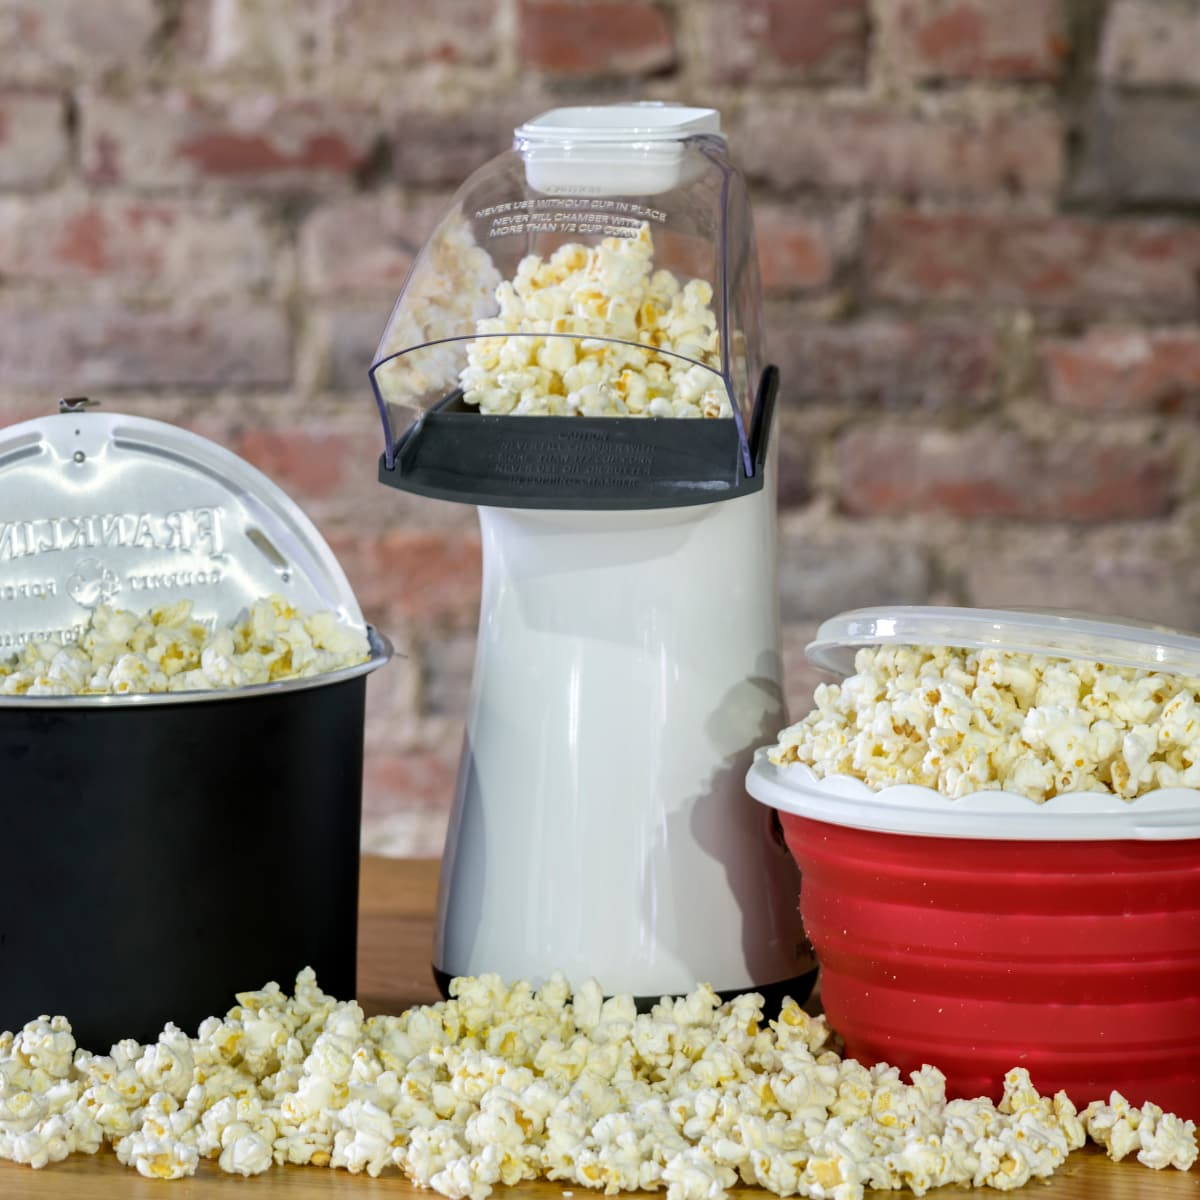 The Best Popcorn Poppers and Popcorn Makers of 2019 - Reviewed